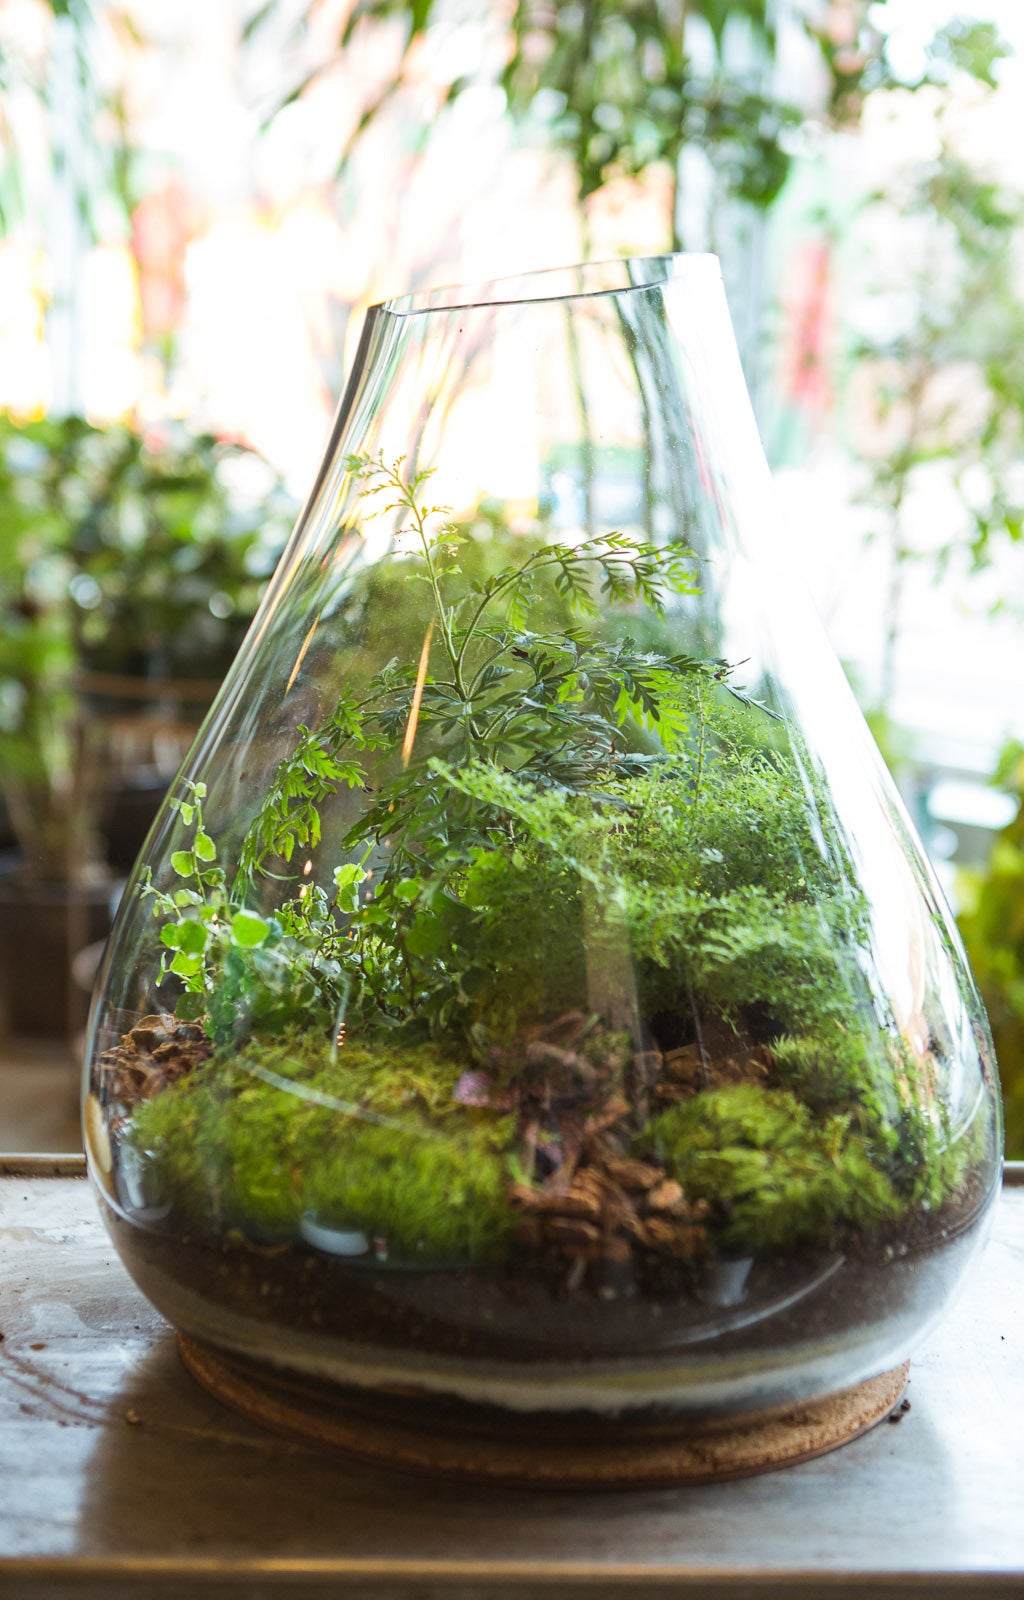 How To Create Dynamic Table Centerpieces With Terrariums